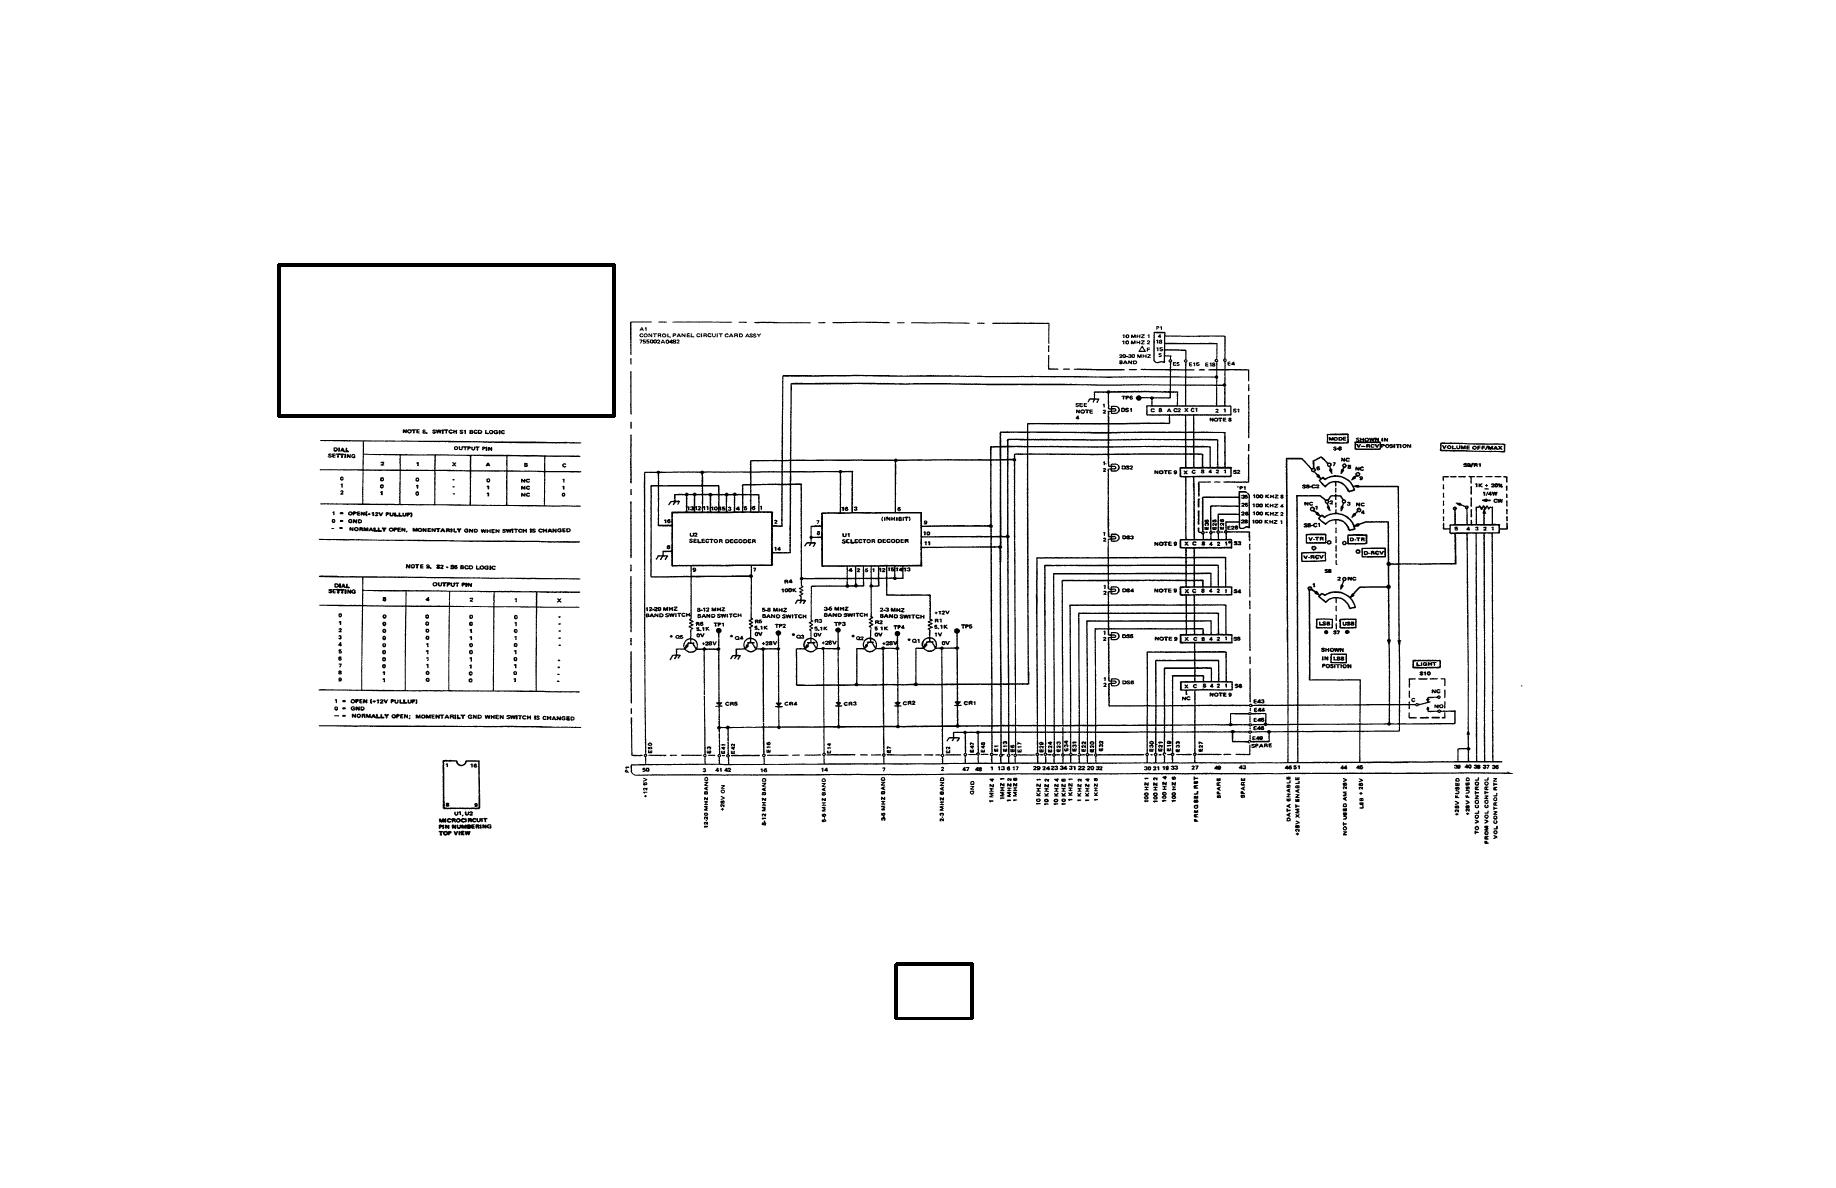 Figure 6-1. Control Panel A1A4 Schematic (Sheet 1 of 2)